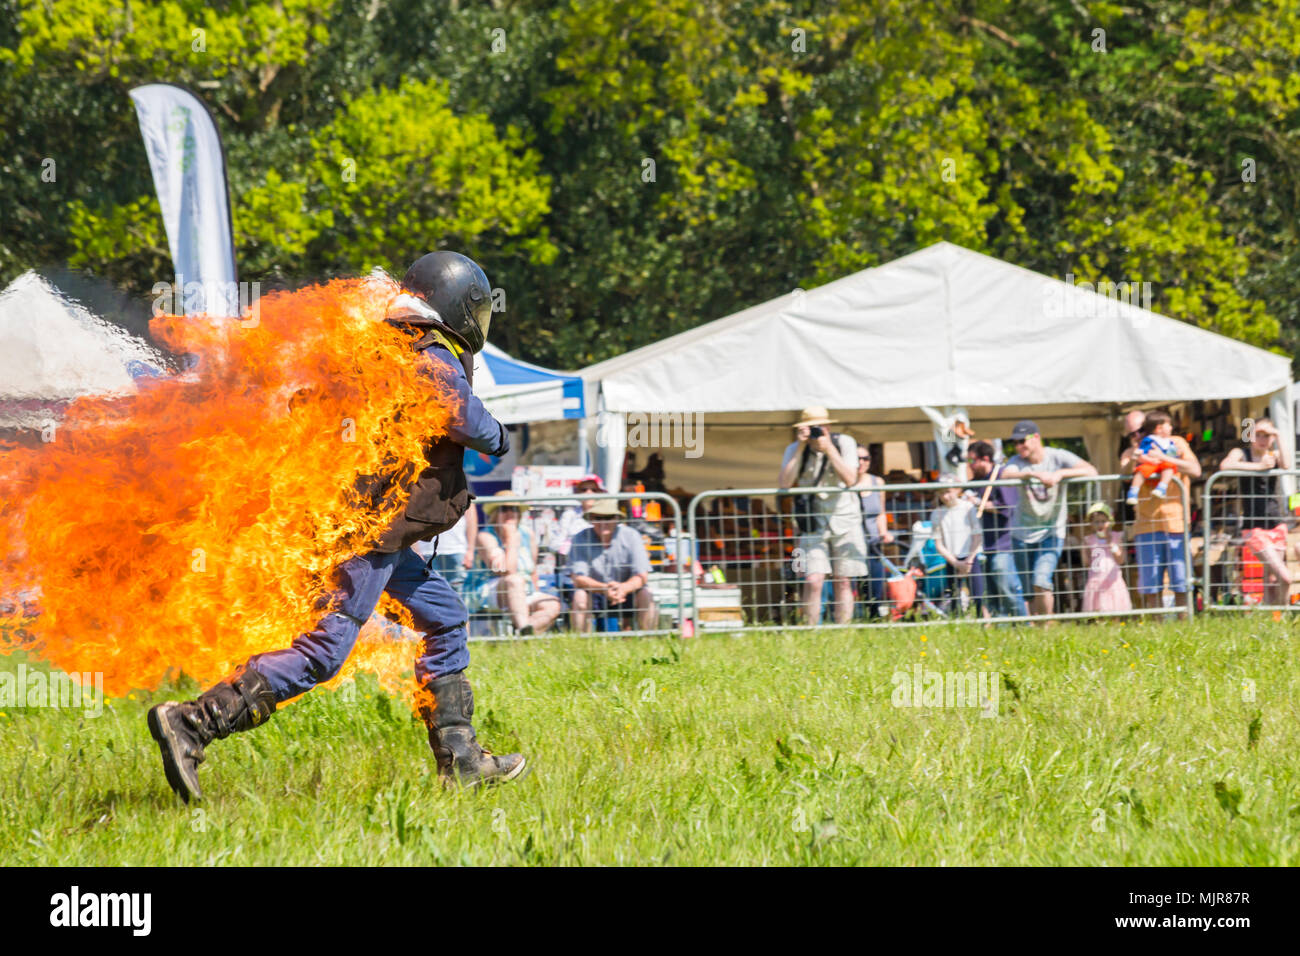 Netley Marsh, Hampshire, UK. 6th May 2018. The first day, of the two day event, Hampshire Game & Country Fair attracts the crowds on a hot sunny day. Stannage International Stunt Display Team thrill the crowds as a stuntman runs around the arena on fire. Credit: Carolyn Jenkins/Alamy Live News - Stock Image